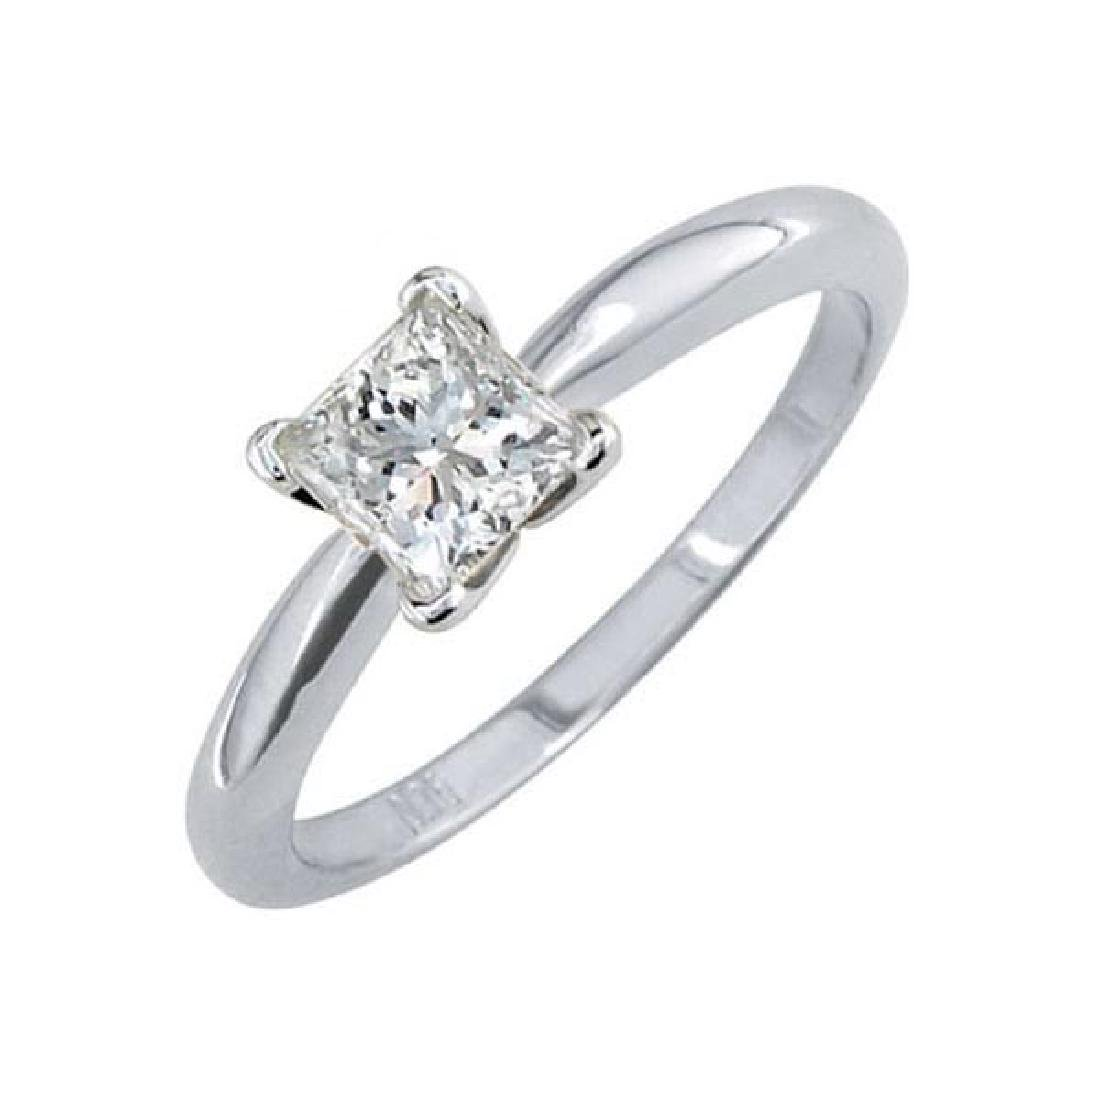 Certified 0.91 CTW Princess Diamond Solitaire 14k Ring